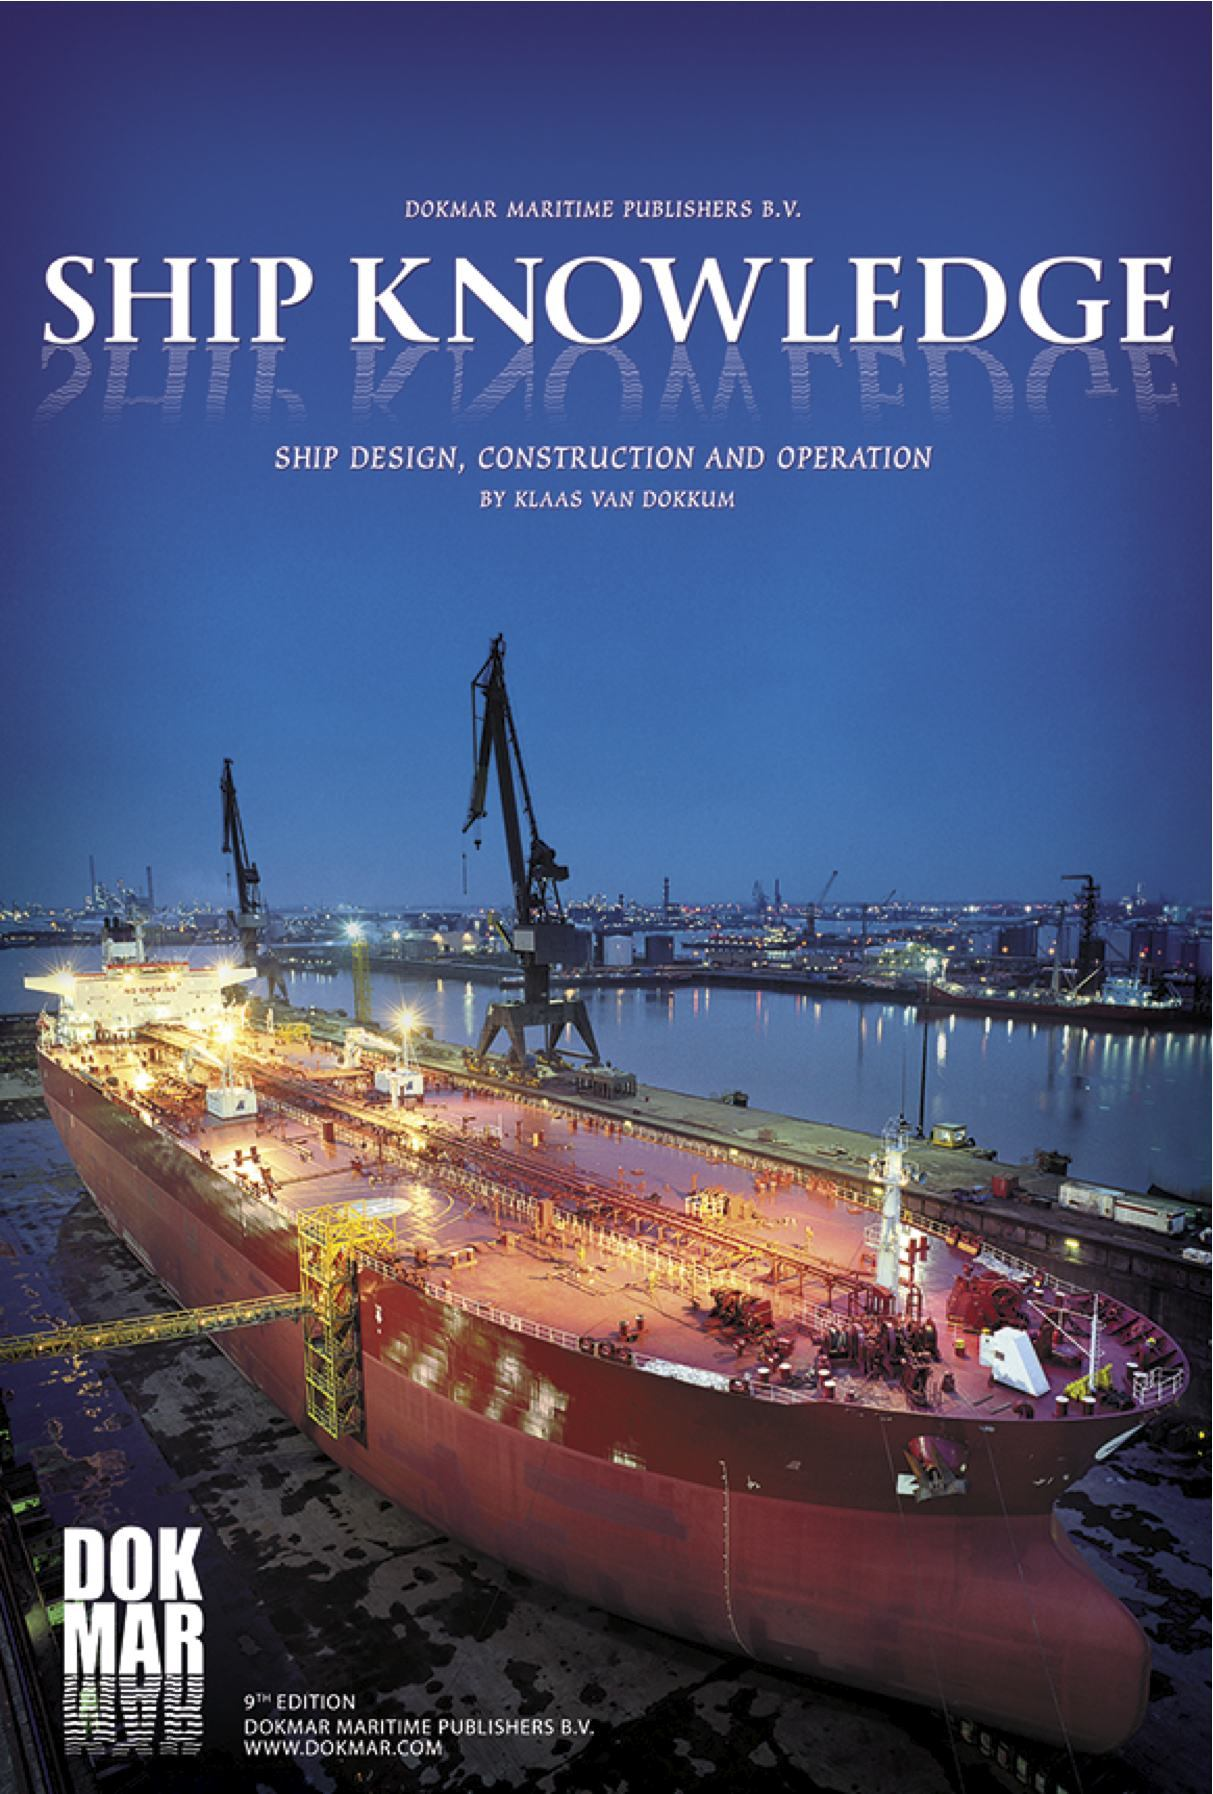 ship-knowledge-9th